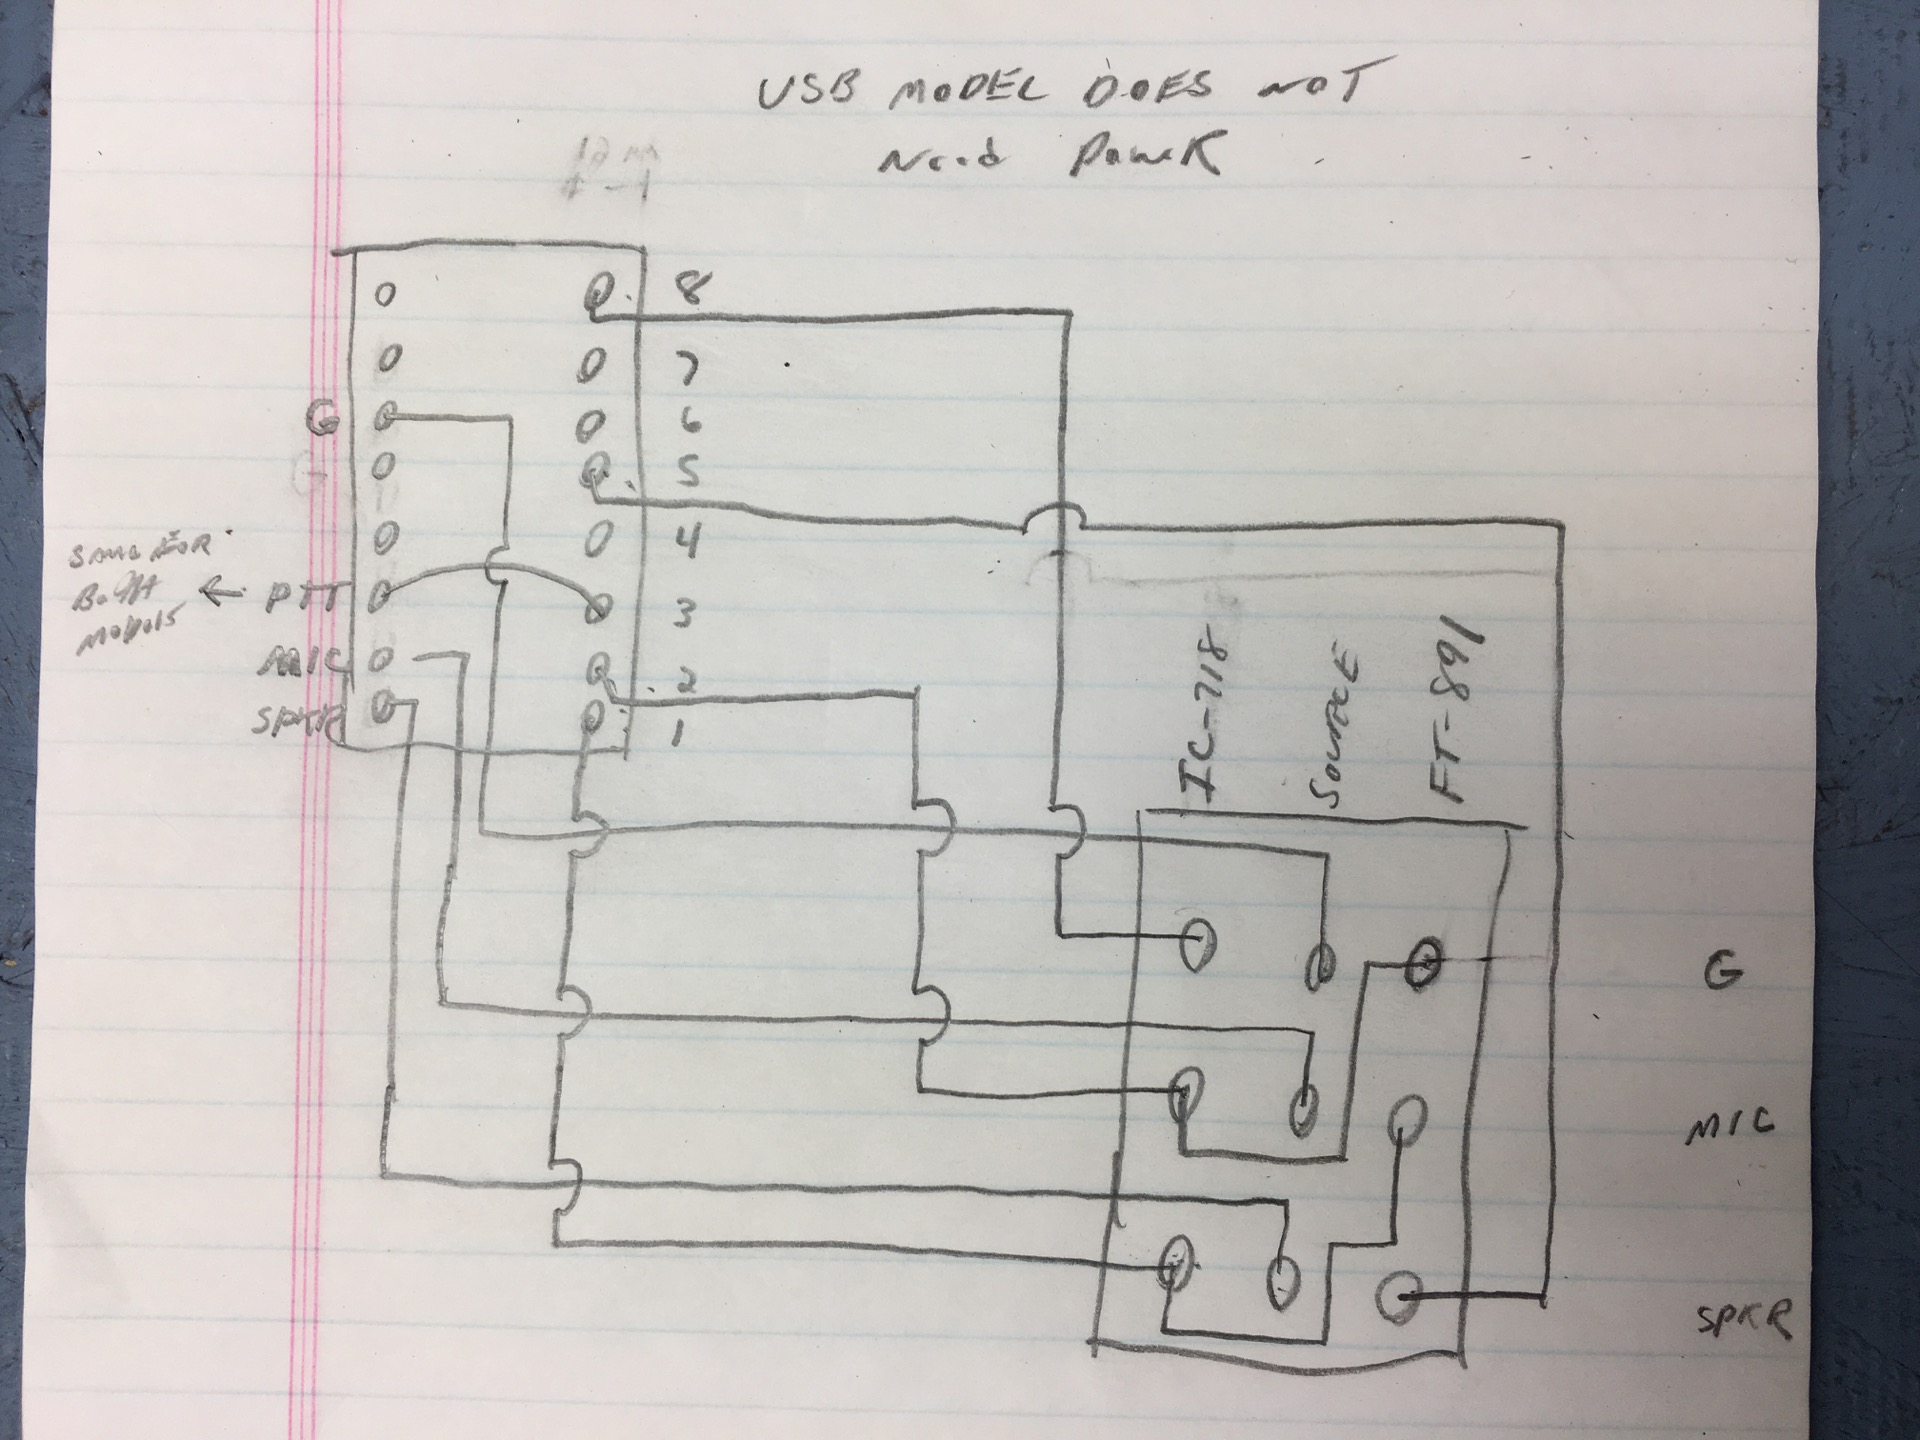 Wiring diagram for my two radios.